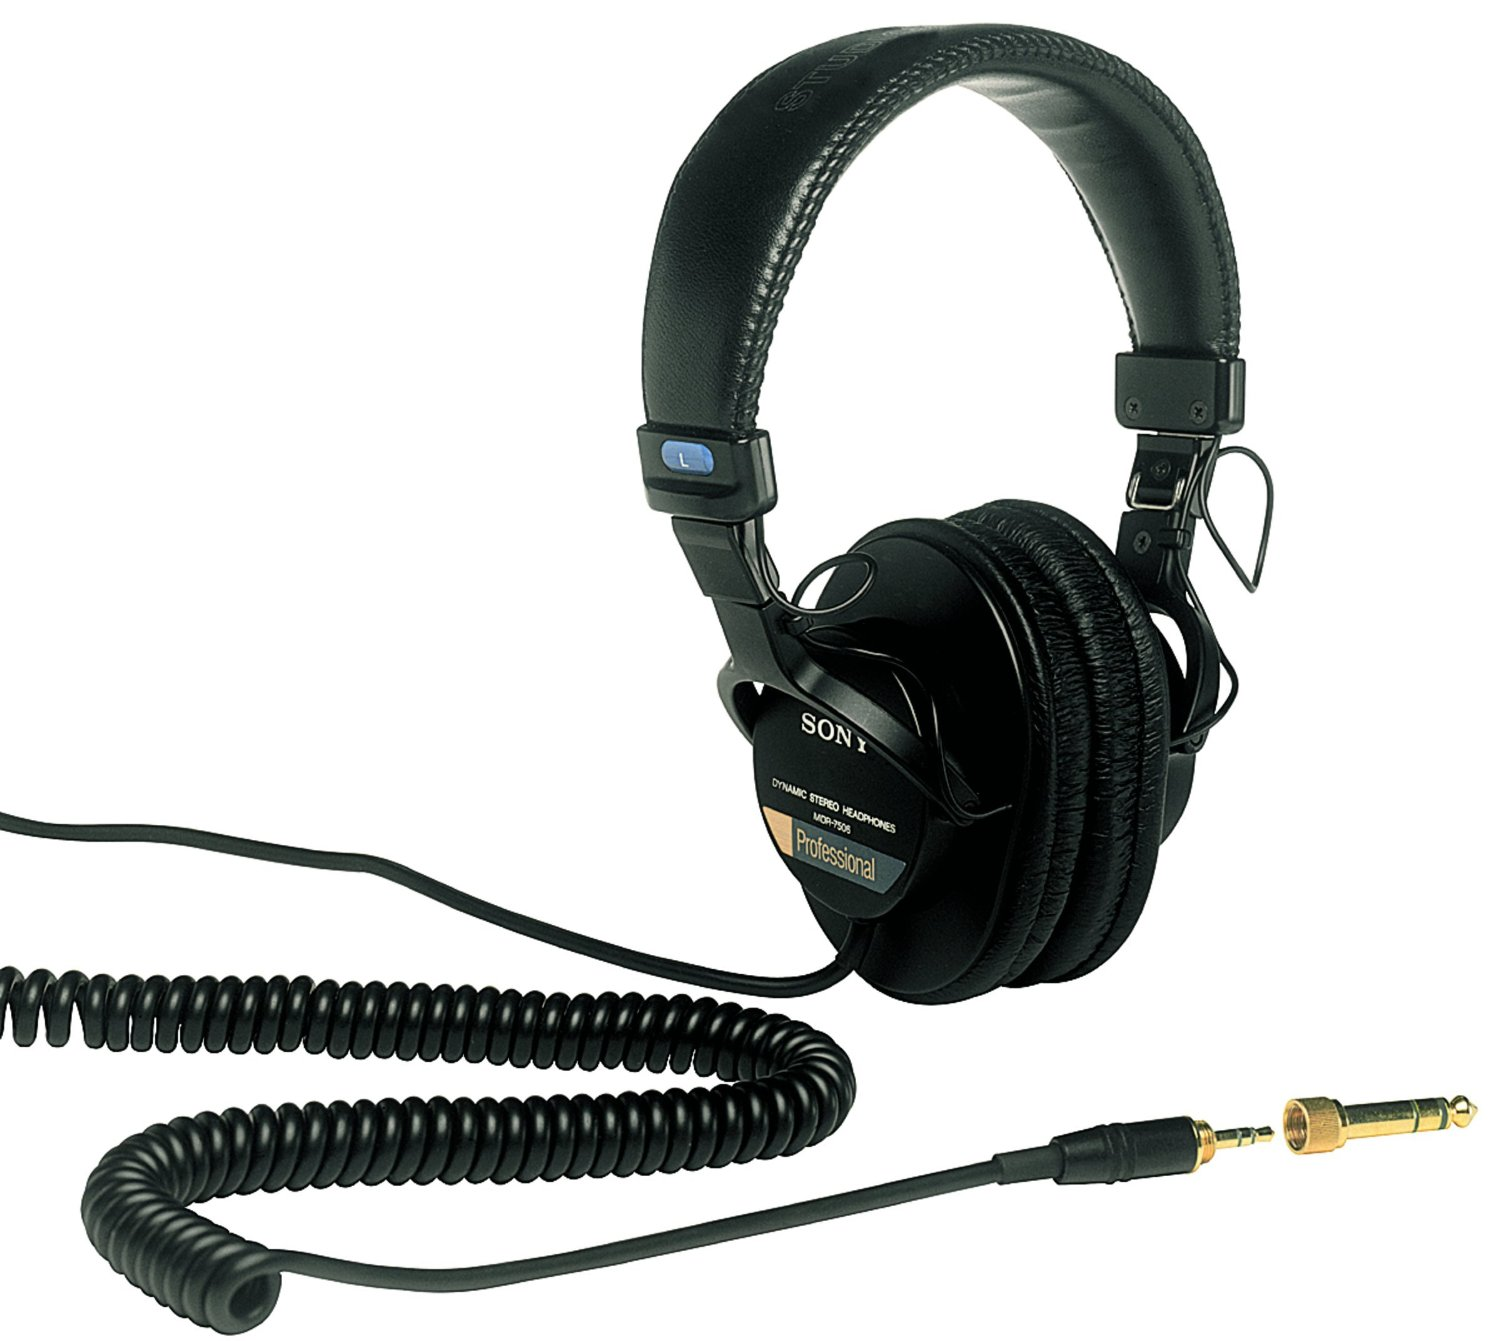 Sony MDR7506 Professional Headphone Review